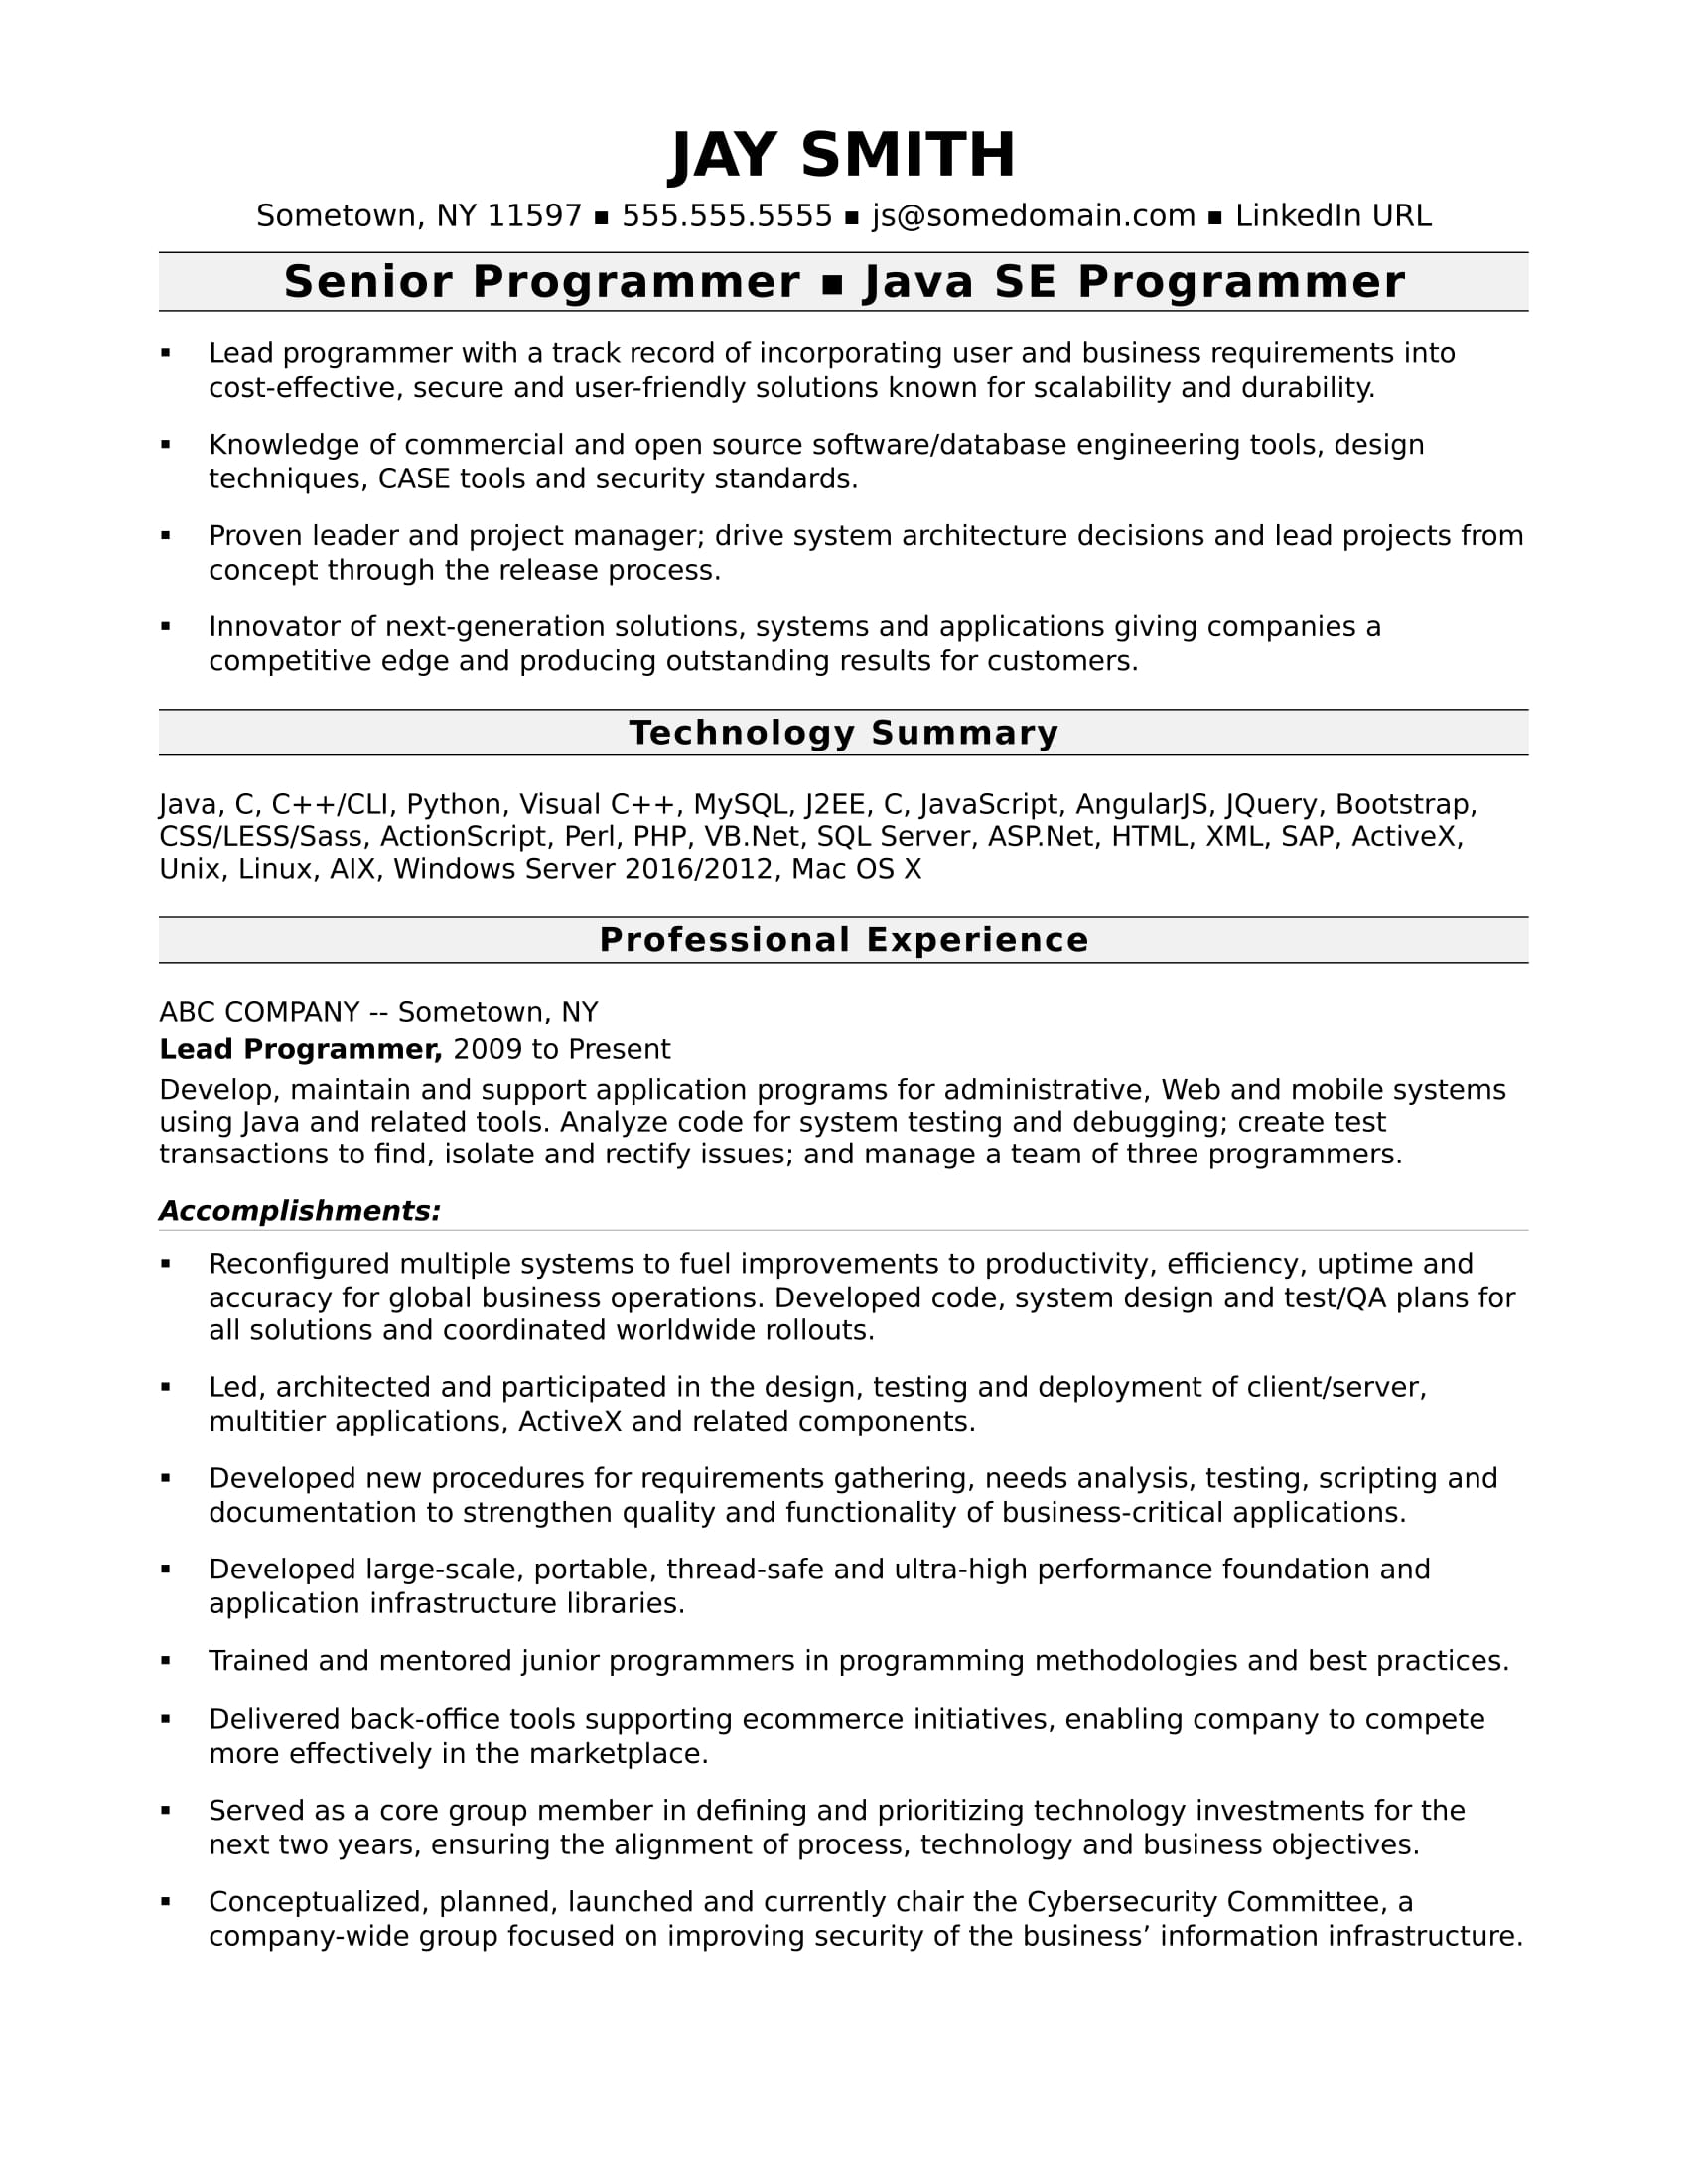 programmer resume template monster need computer experienced for photoshop job student Resume Need A Resume Template